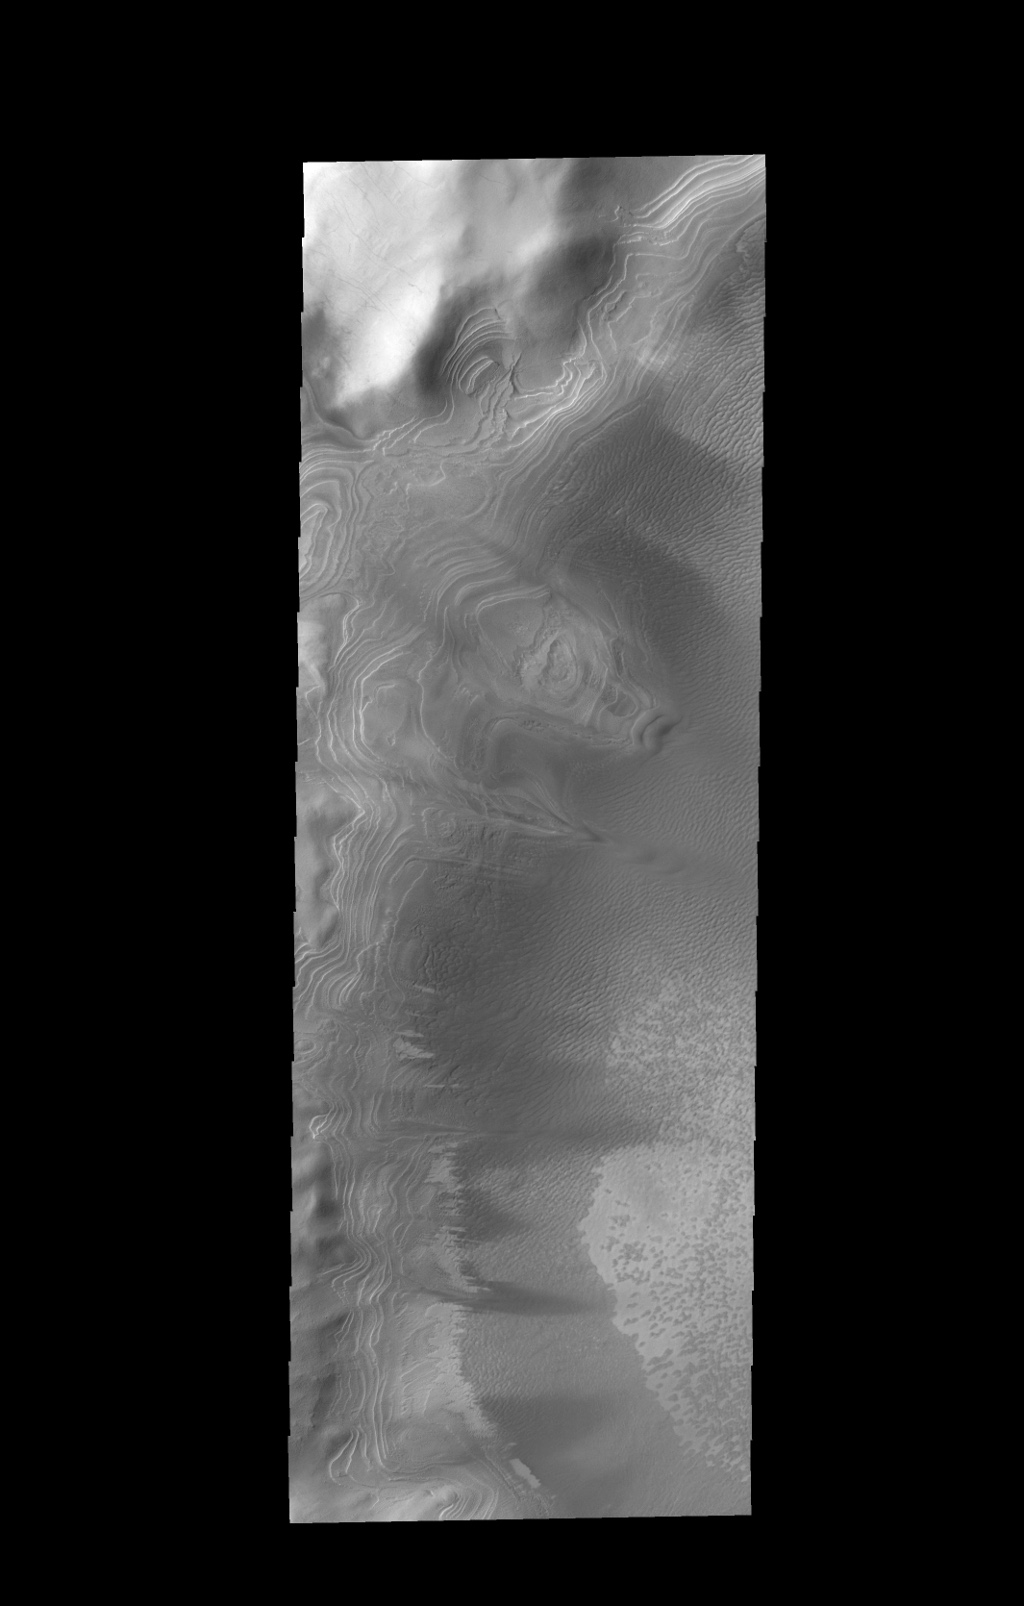 Numerous layers within Burroughs Crater are visible in this image captured by NASA's 2001 Mars Odyssey spacecraft.